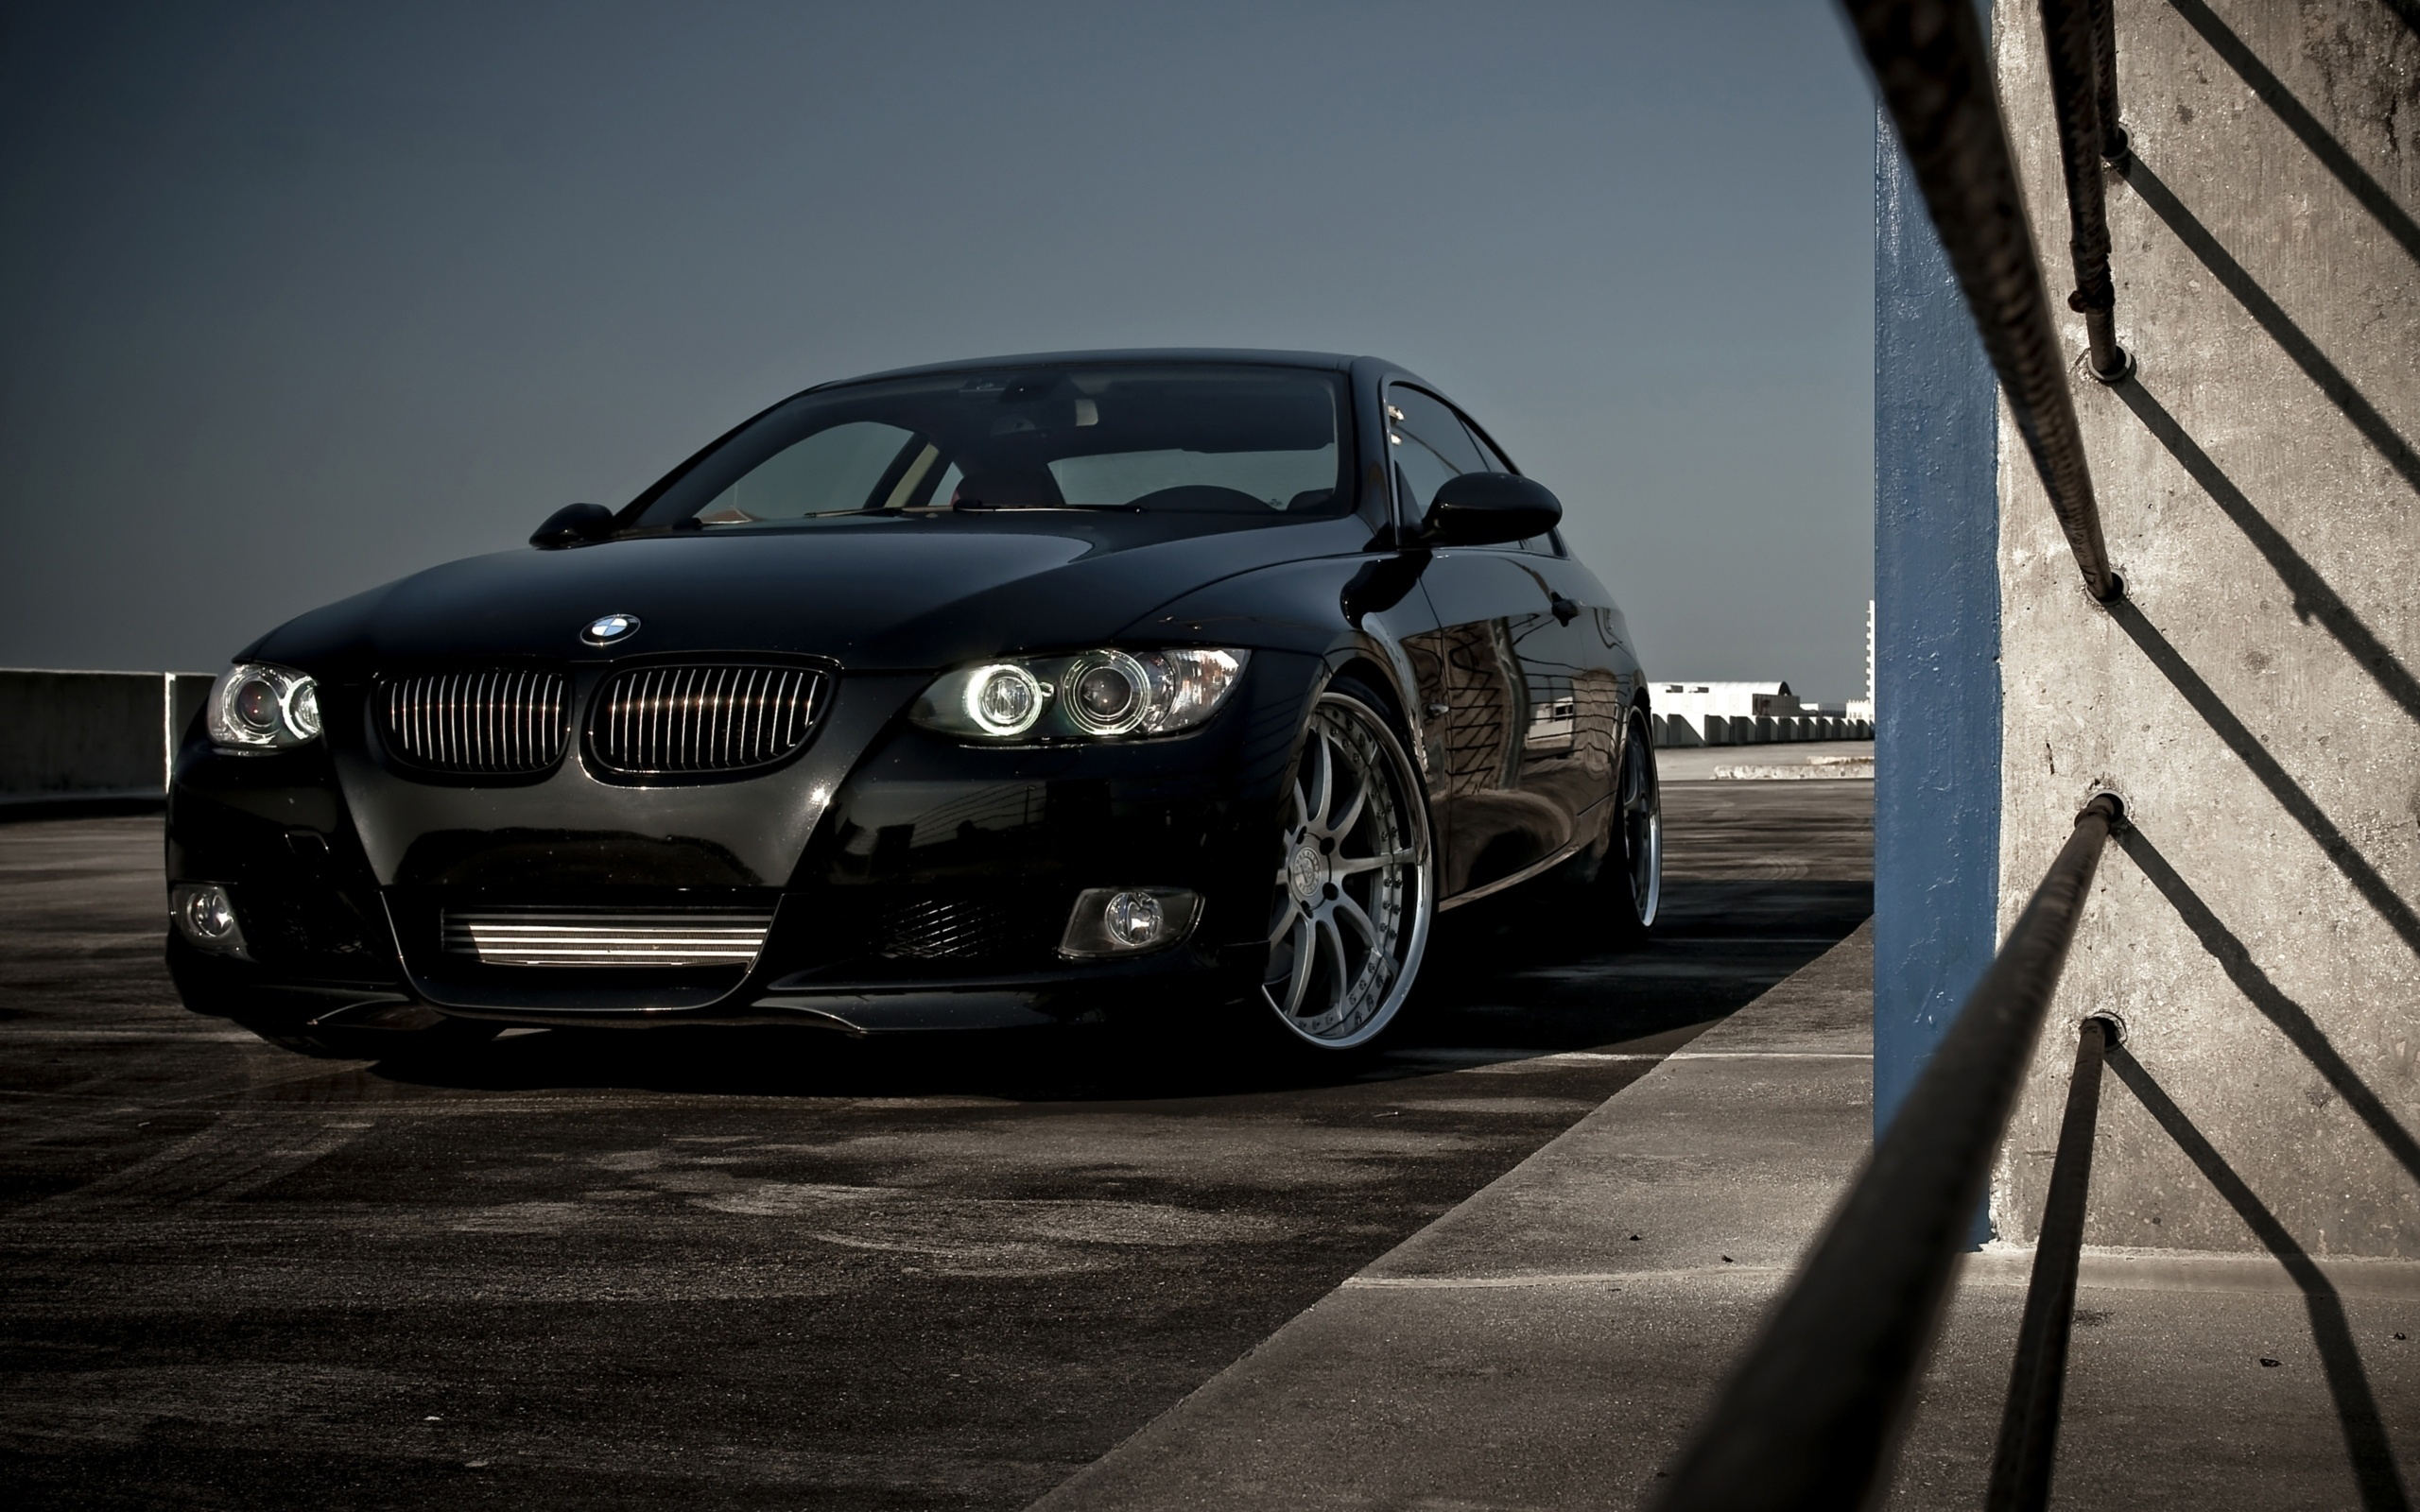 Bmw Hd Wallpapers Background: 15 Fantastic HD BMW Wallpapers